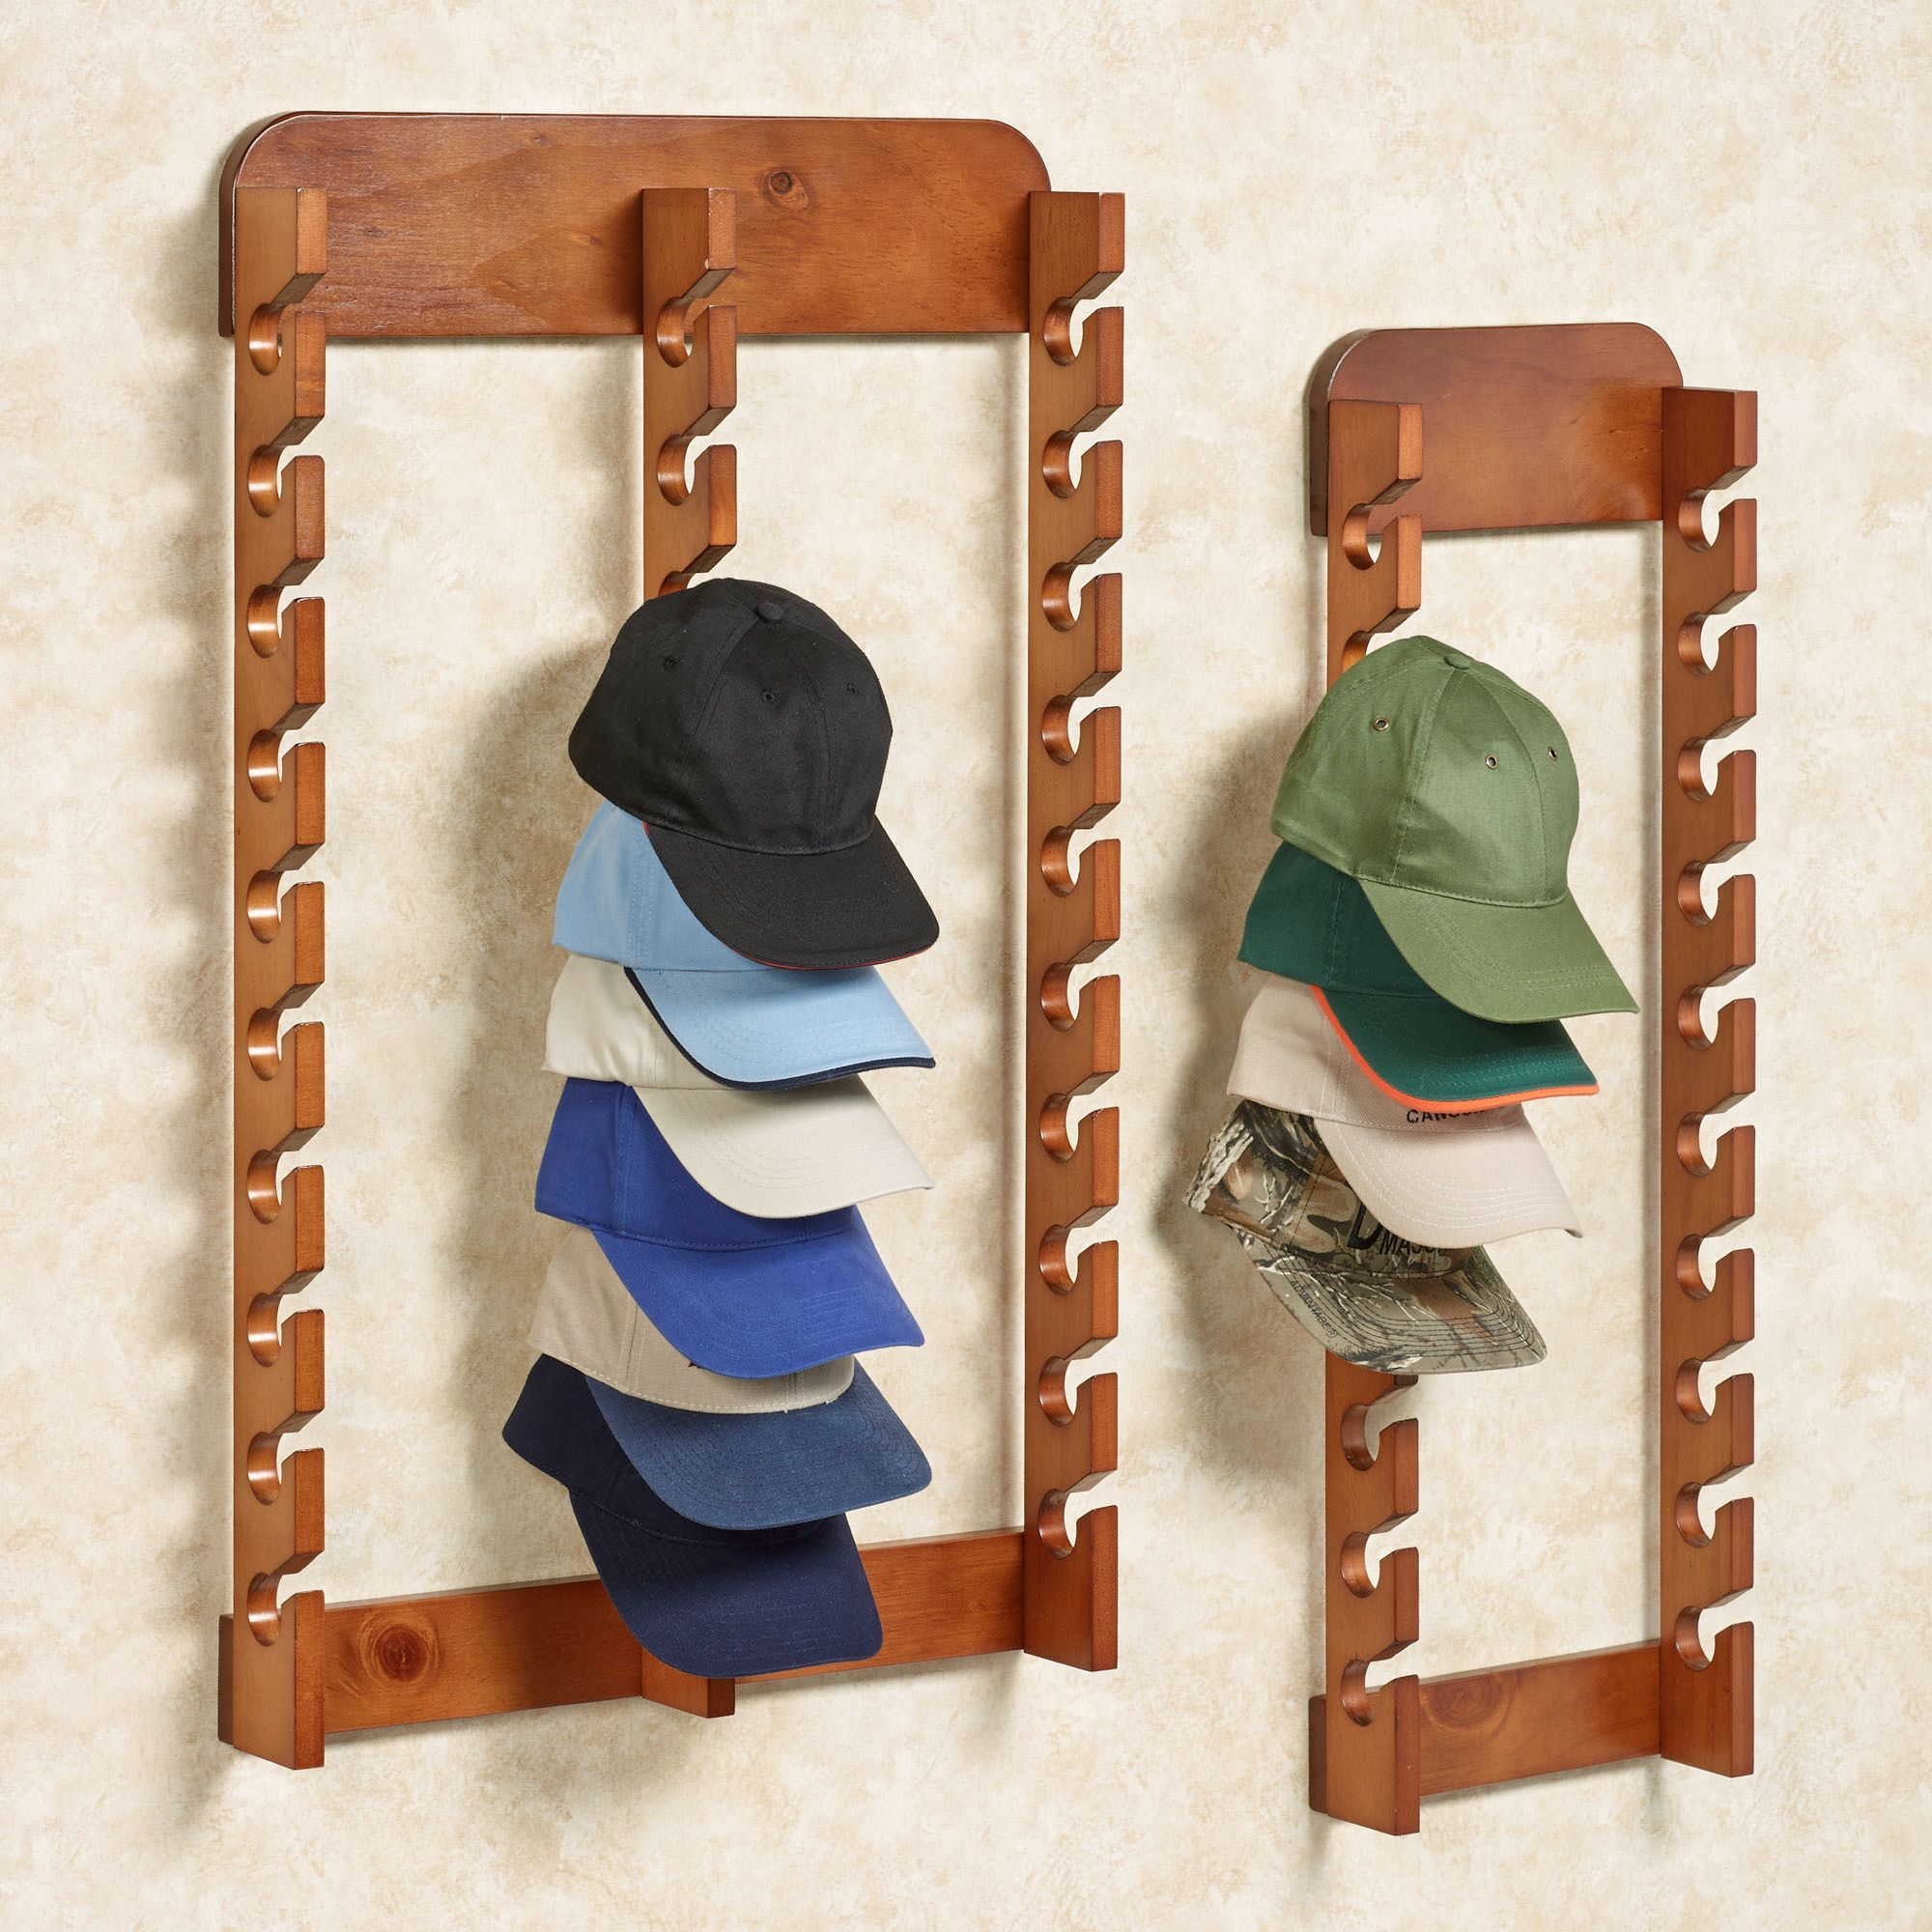 Wood Cap Display Wall Rack Holds Up To 30 Hats 2019